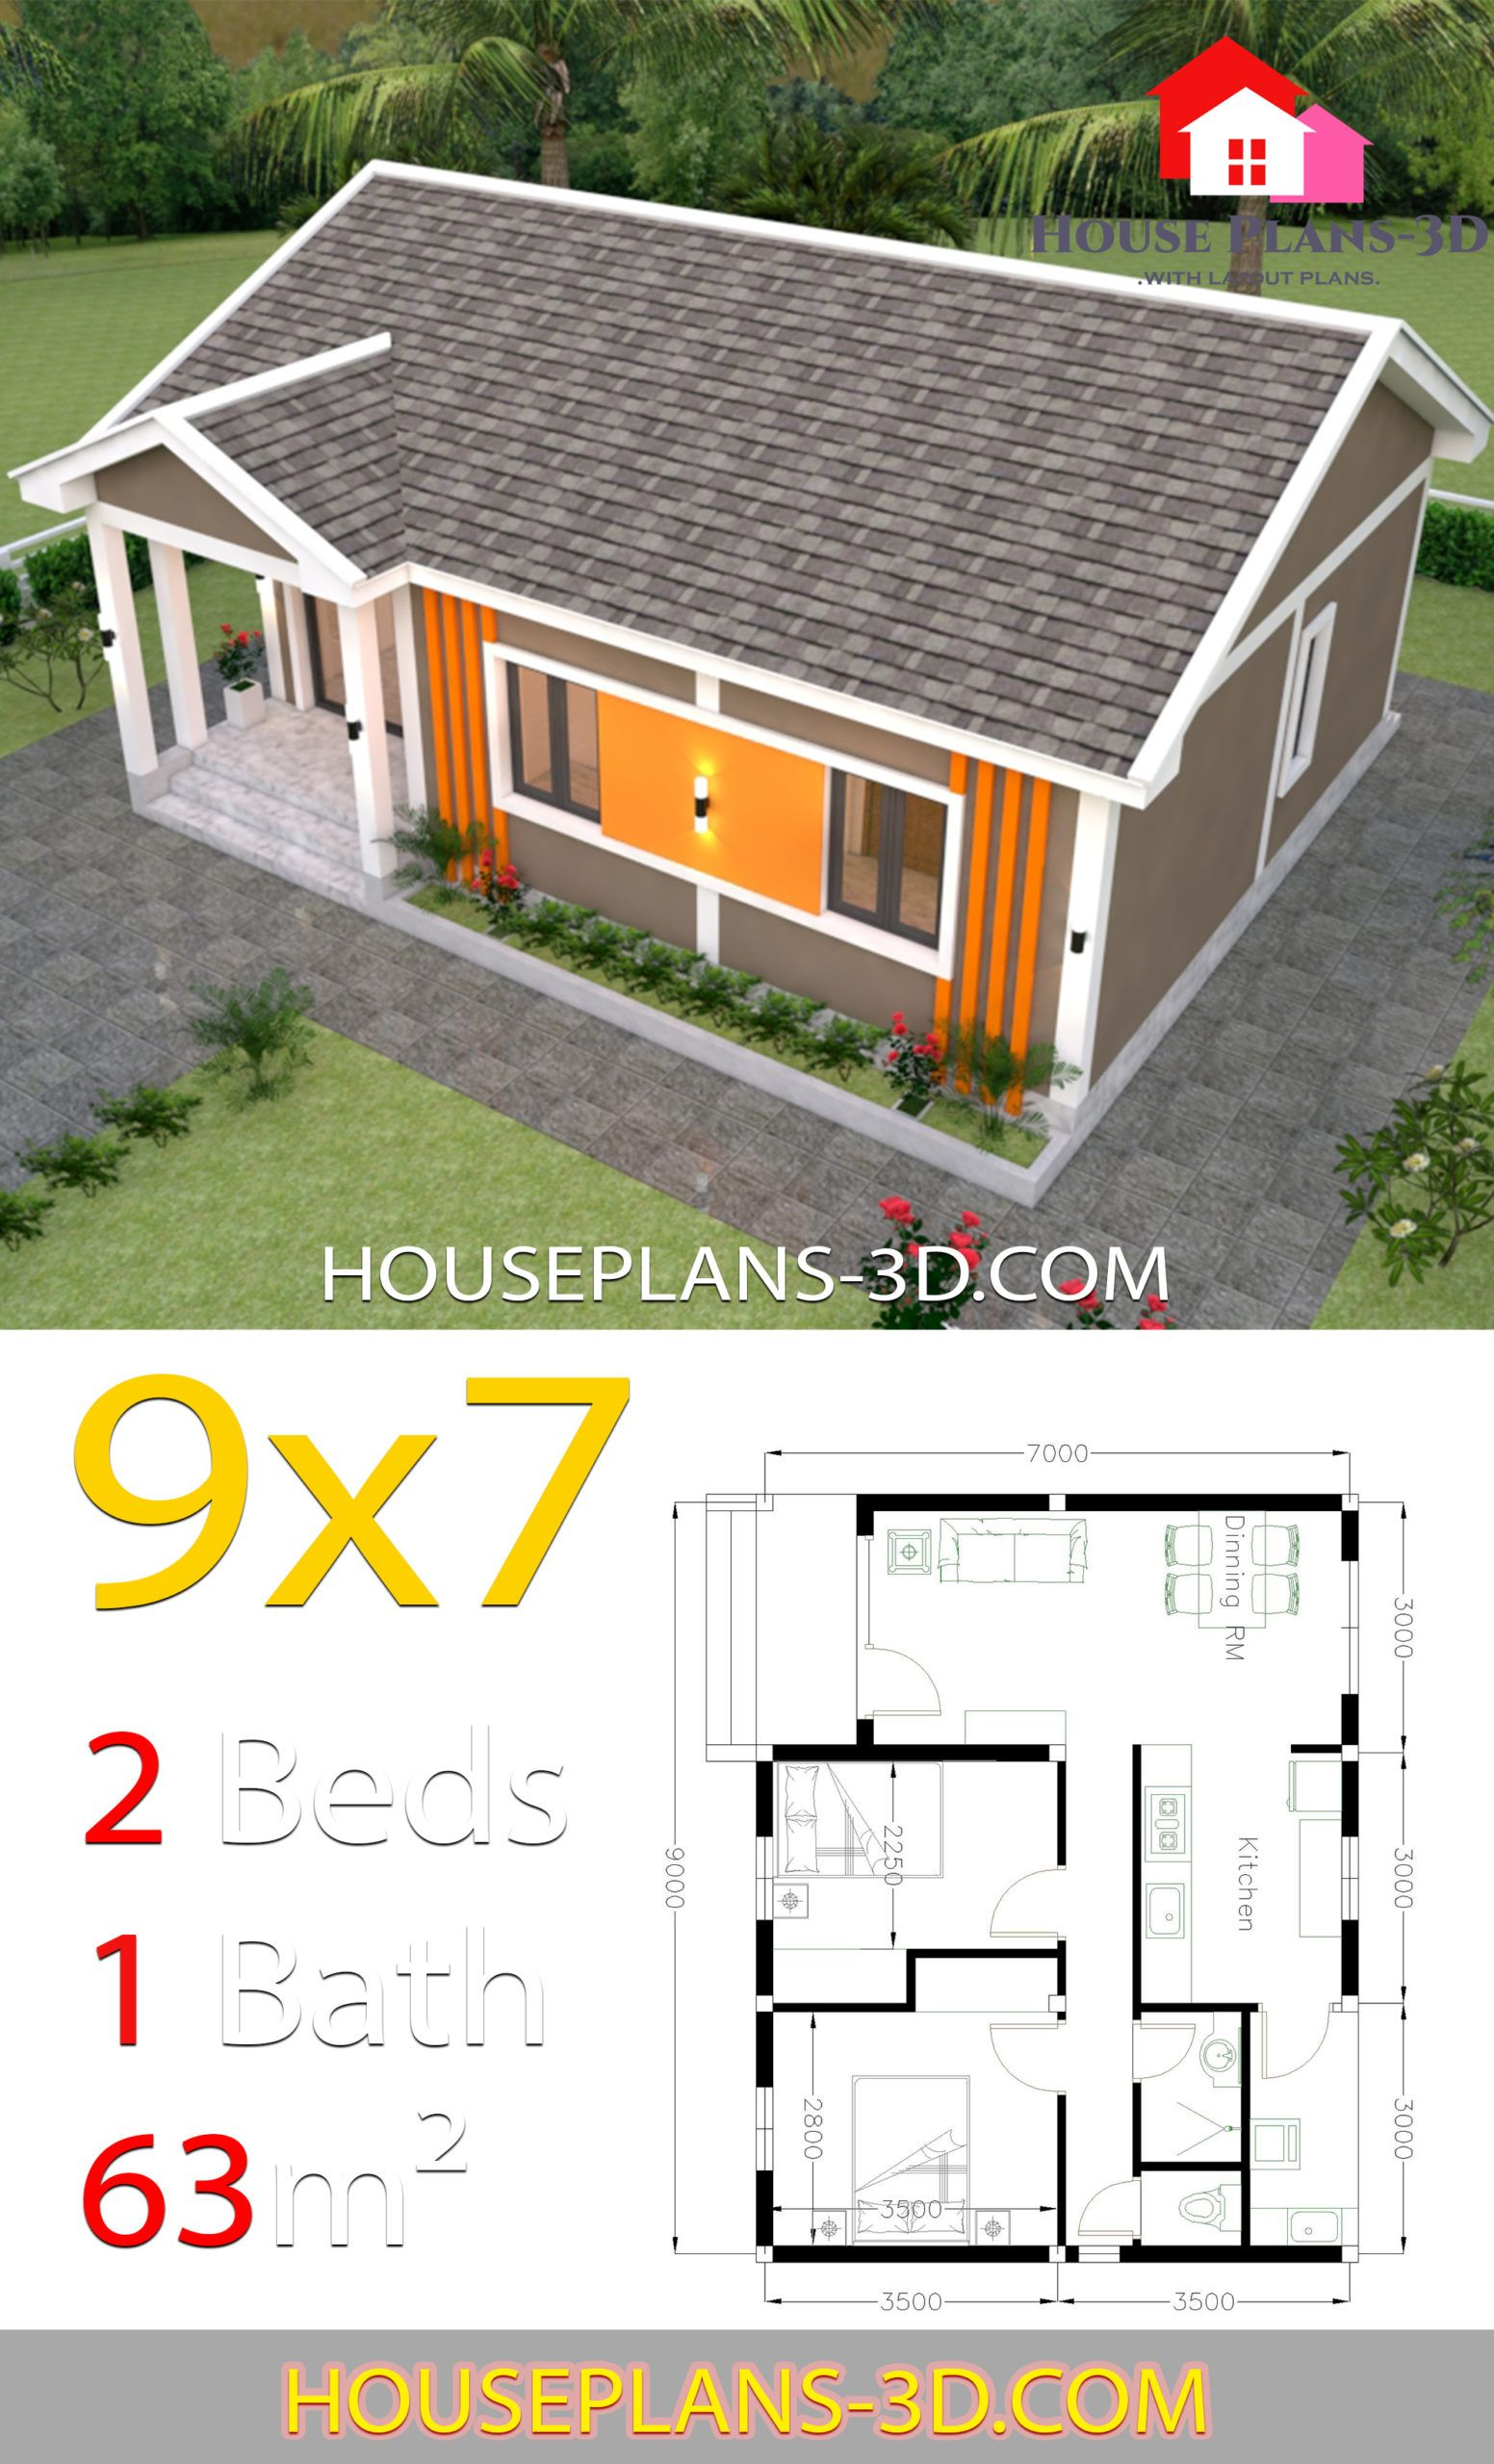 House Plans 9x7 With 2 Bedrooms Gable Roof House Plans 3d Diy House Plans Gable Roof House House Plans